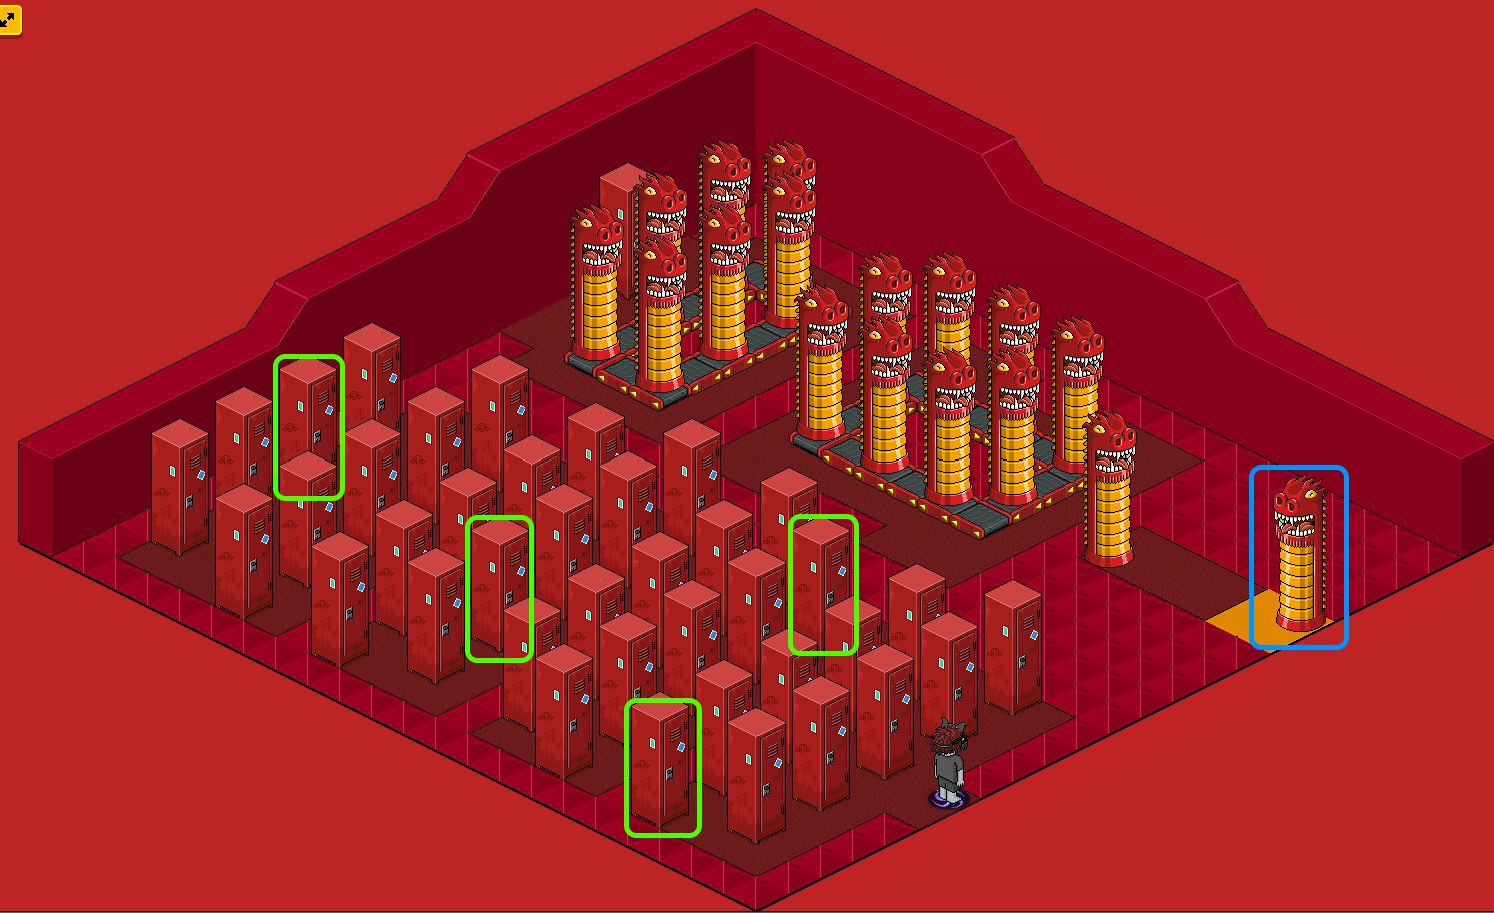 [Pride] Labyrinthe - Rouge